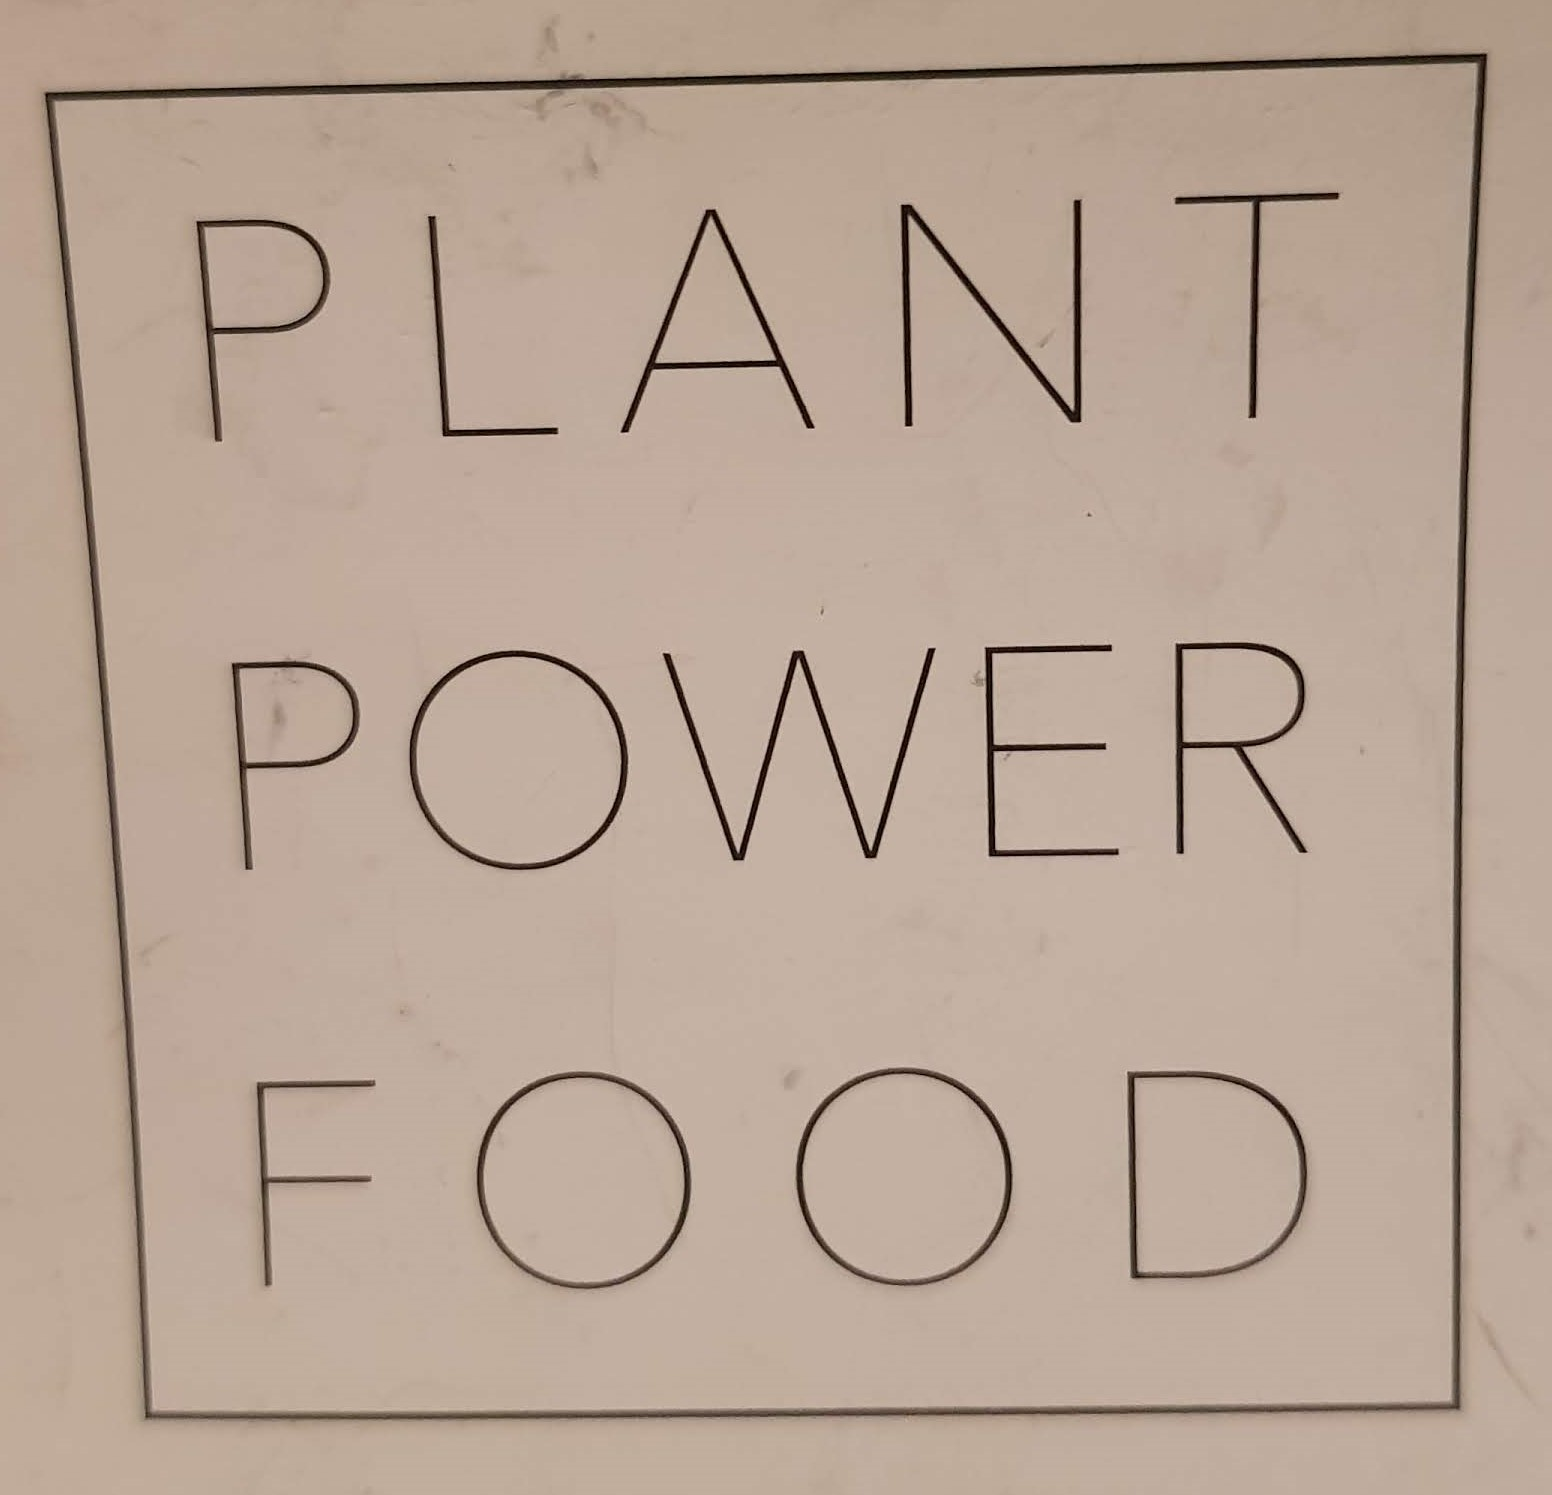 Power Plant Food, Kopenhagen